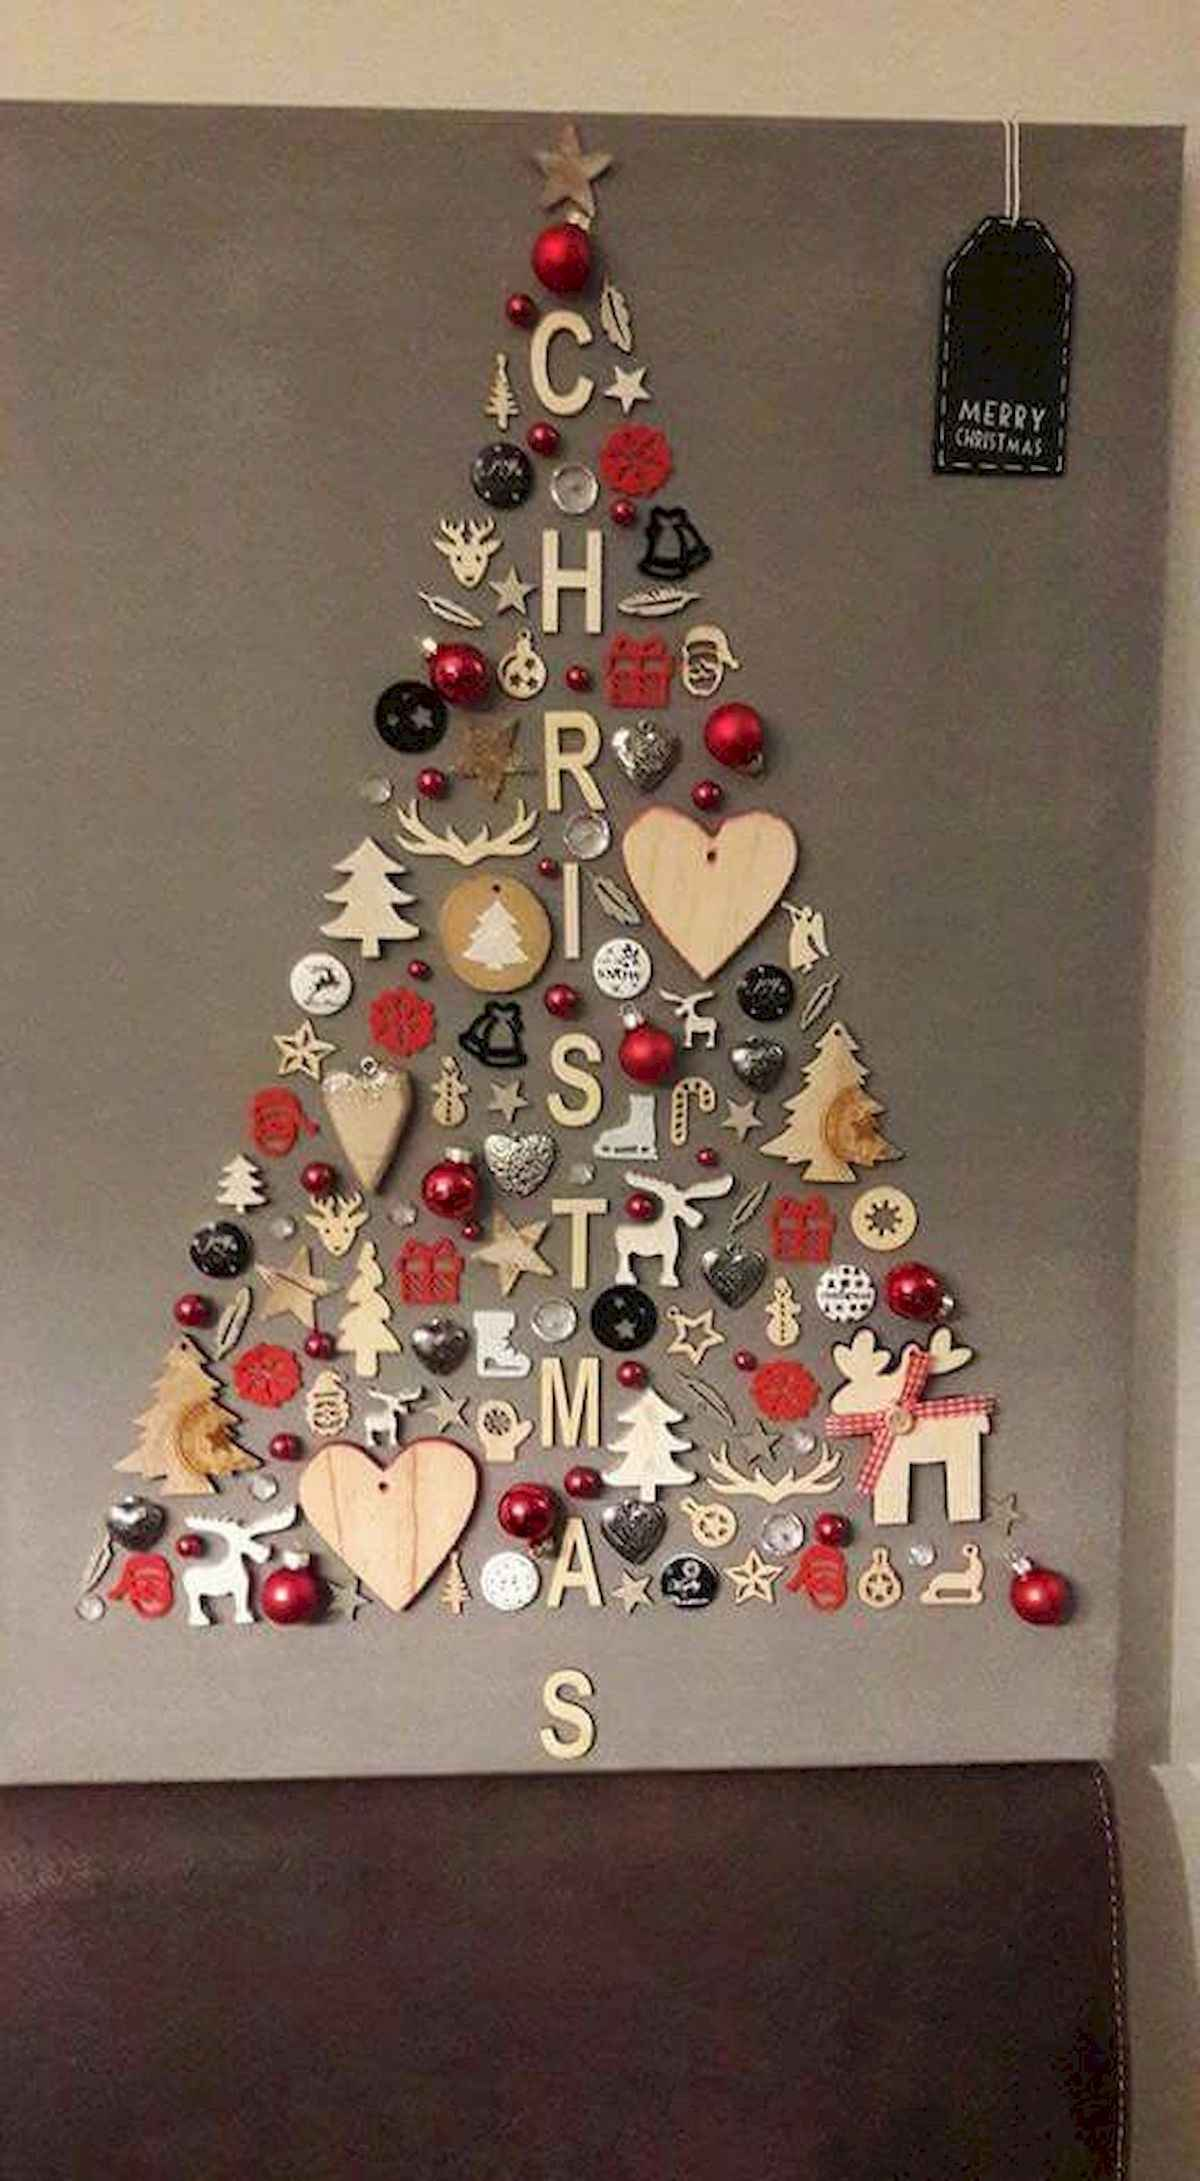 60 awesome wall art christmas ideas decorations (43)